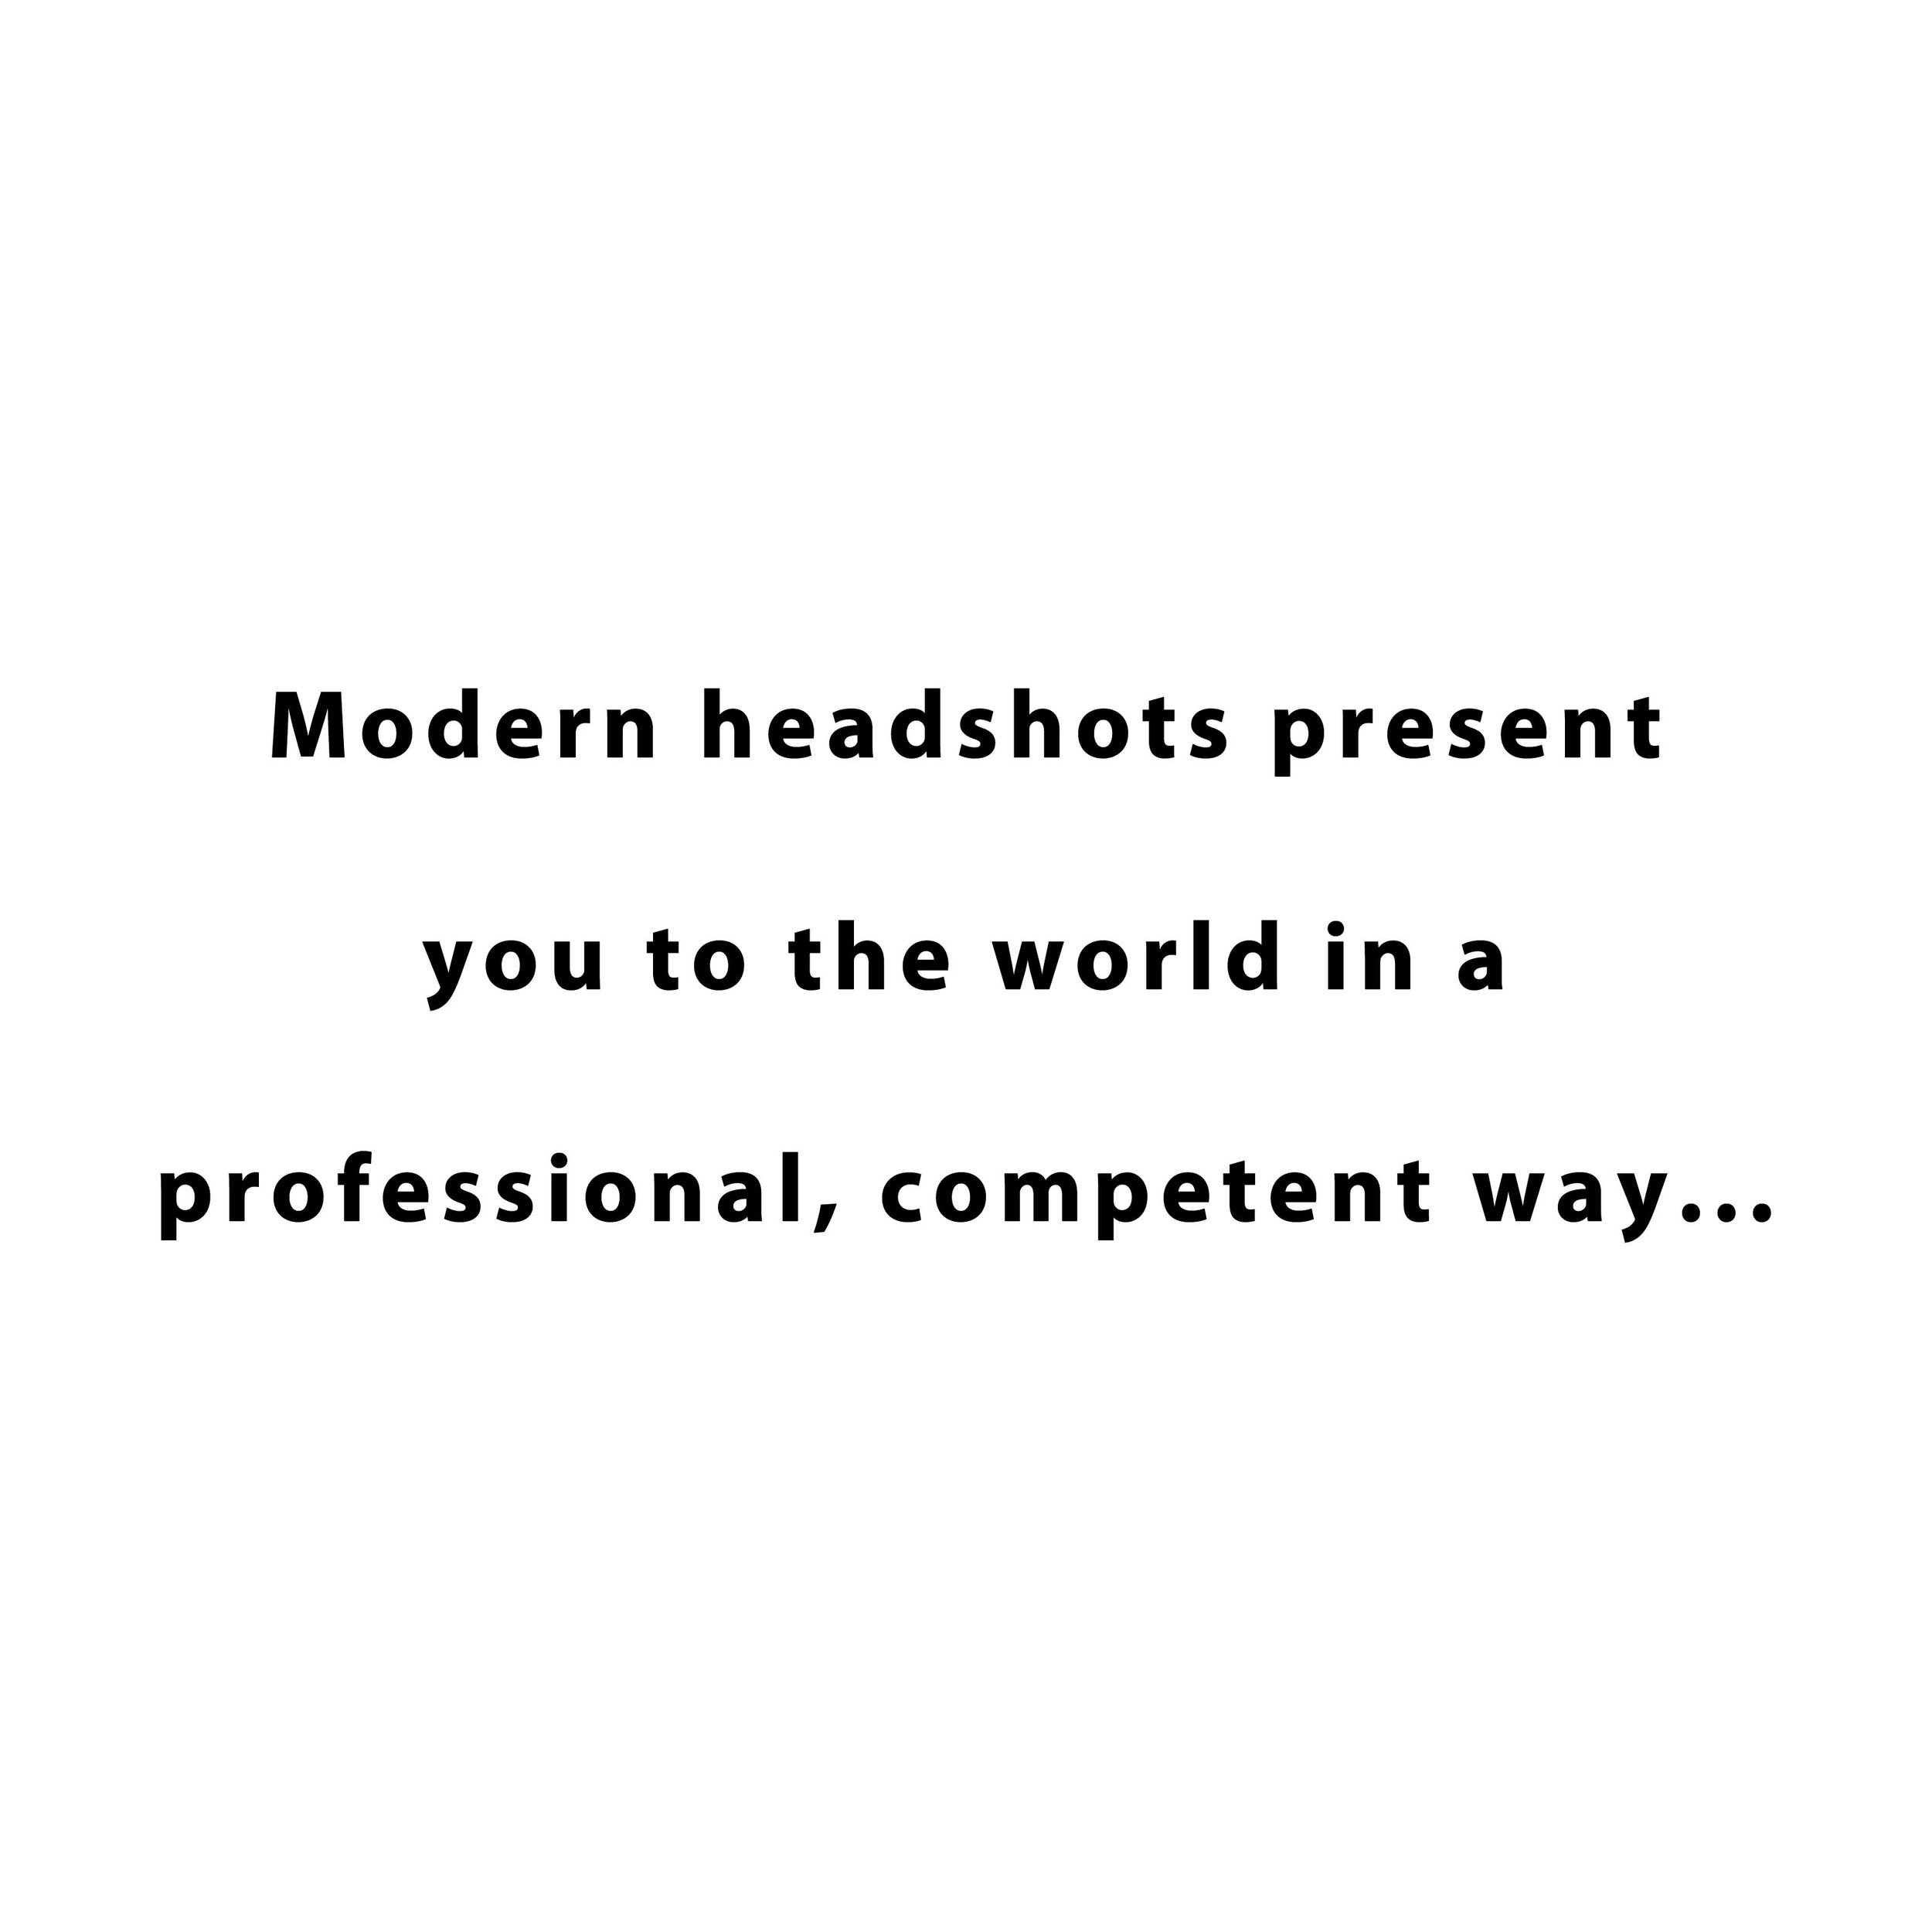 Headshots-Slide2.jpg